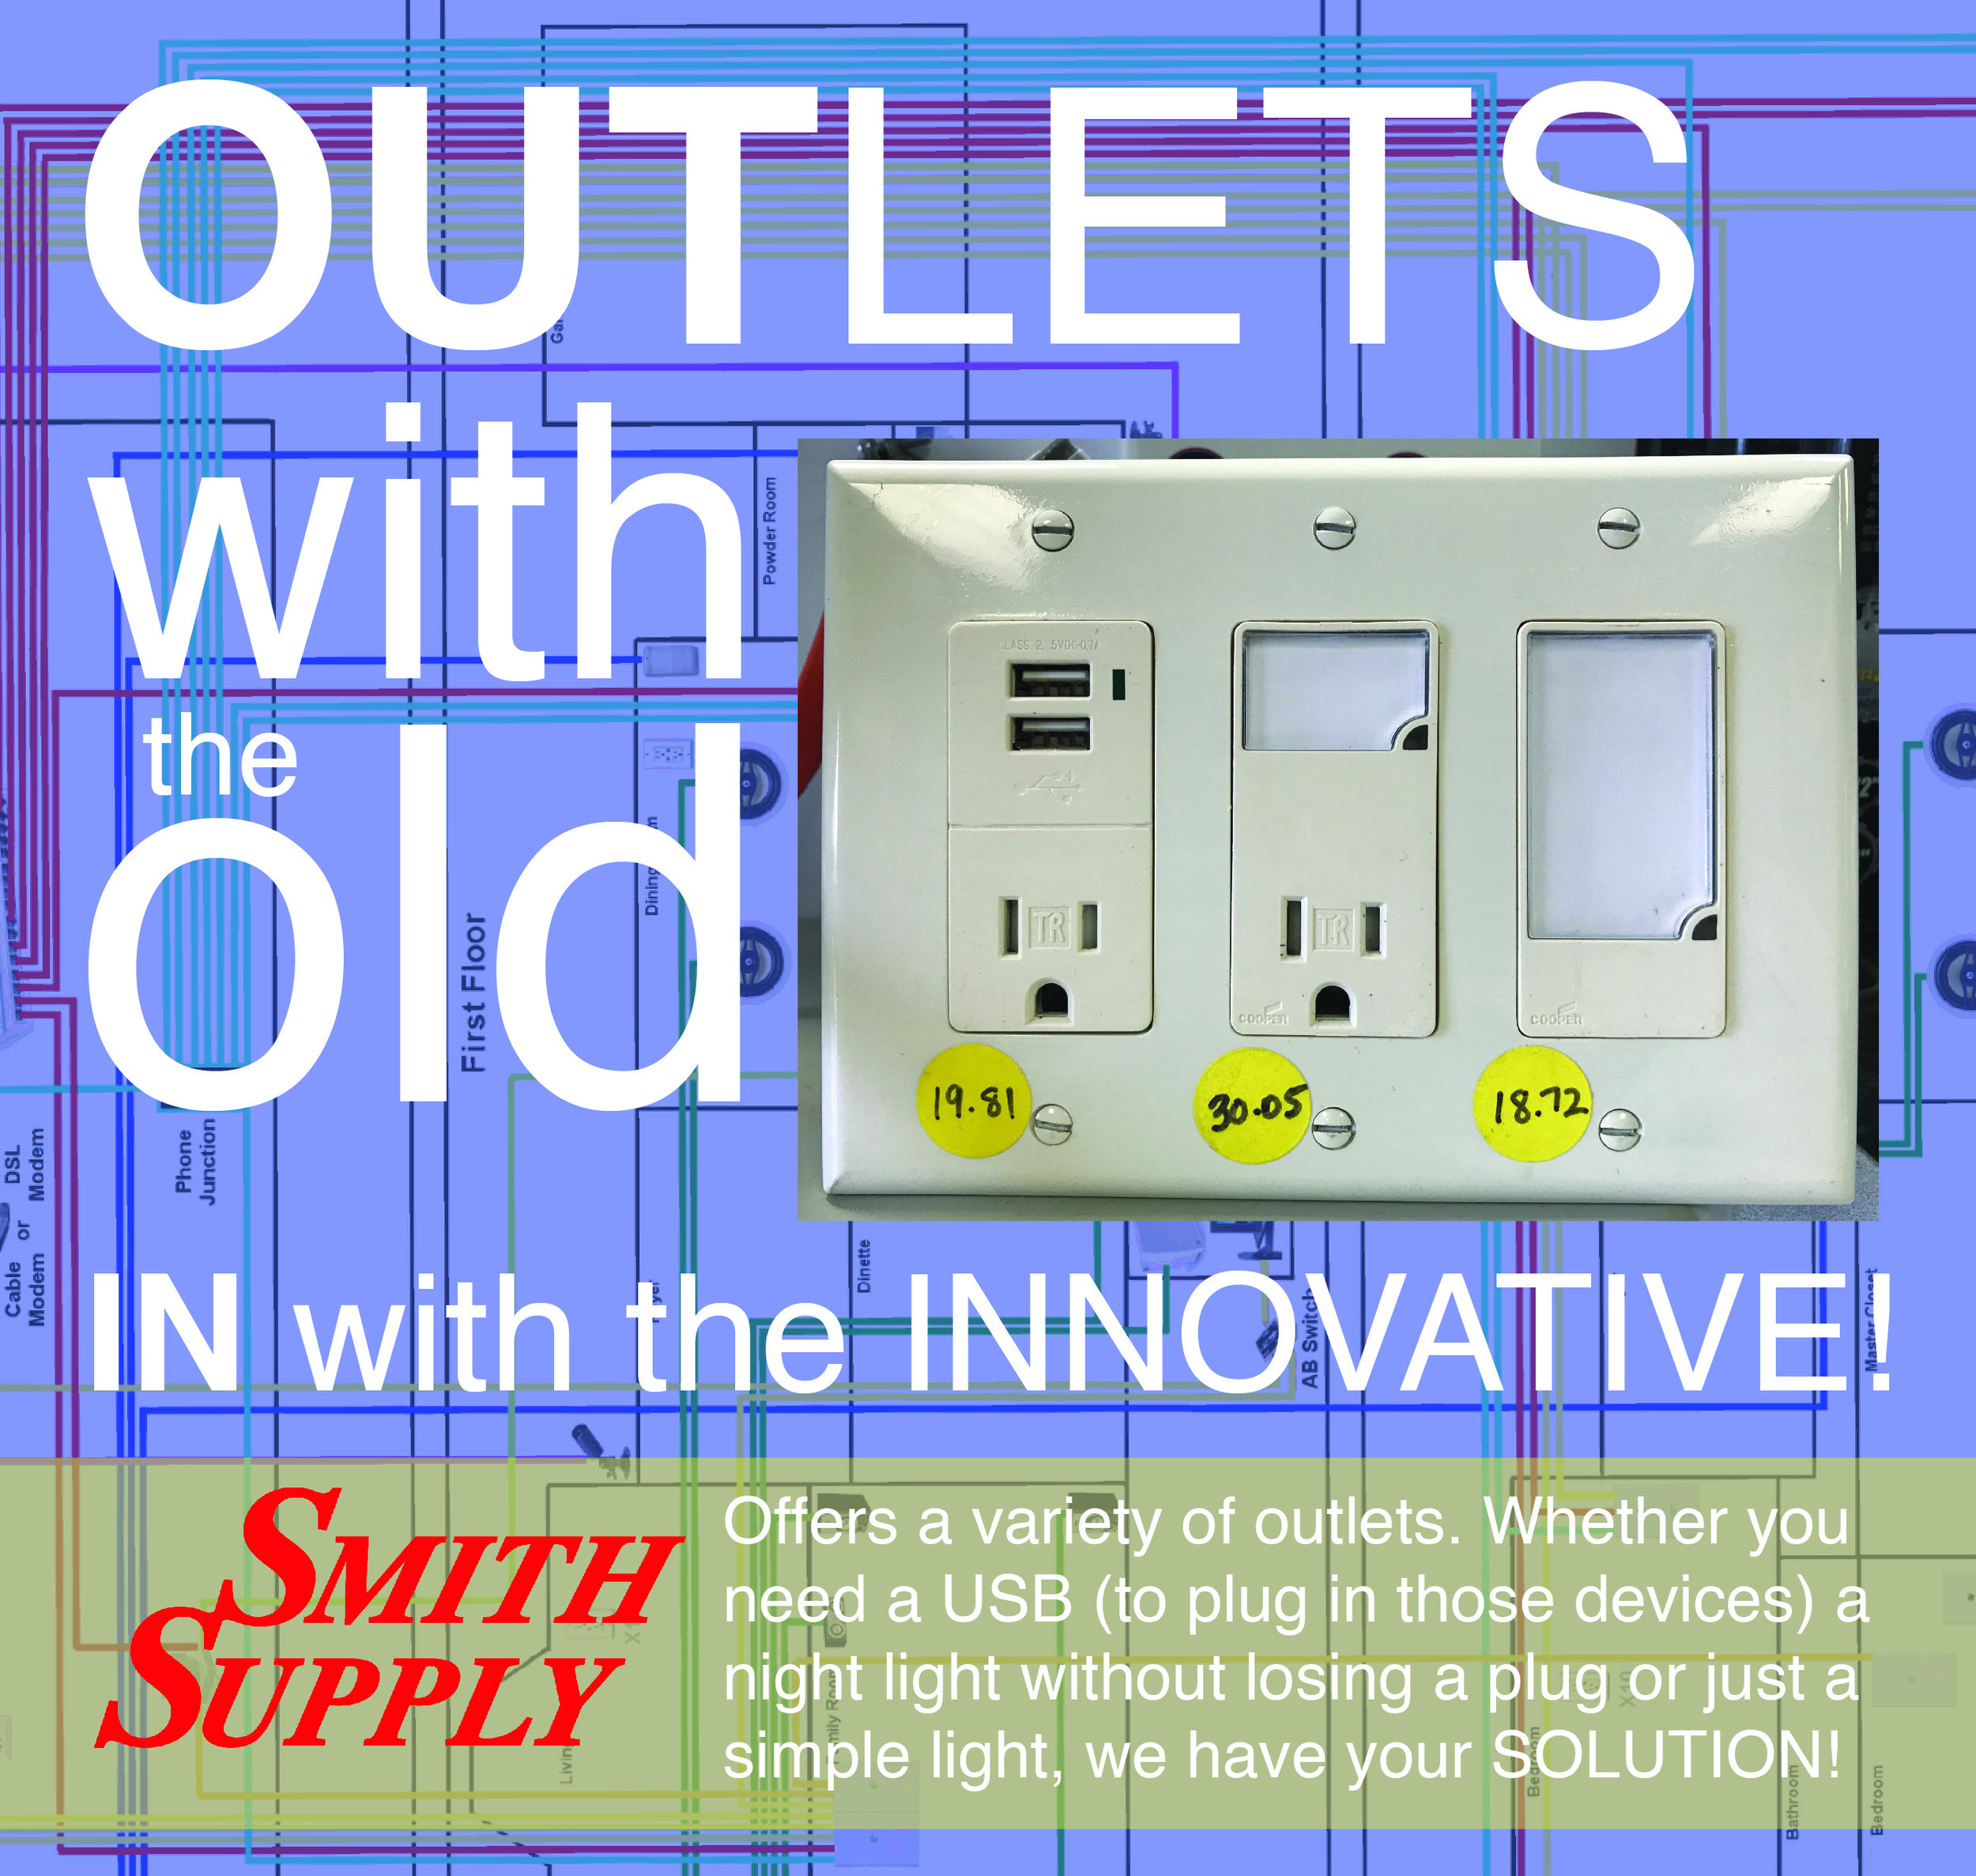 electric_outlets-01.jpg